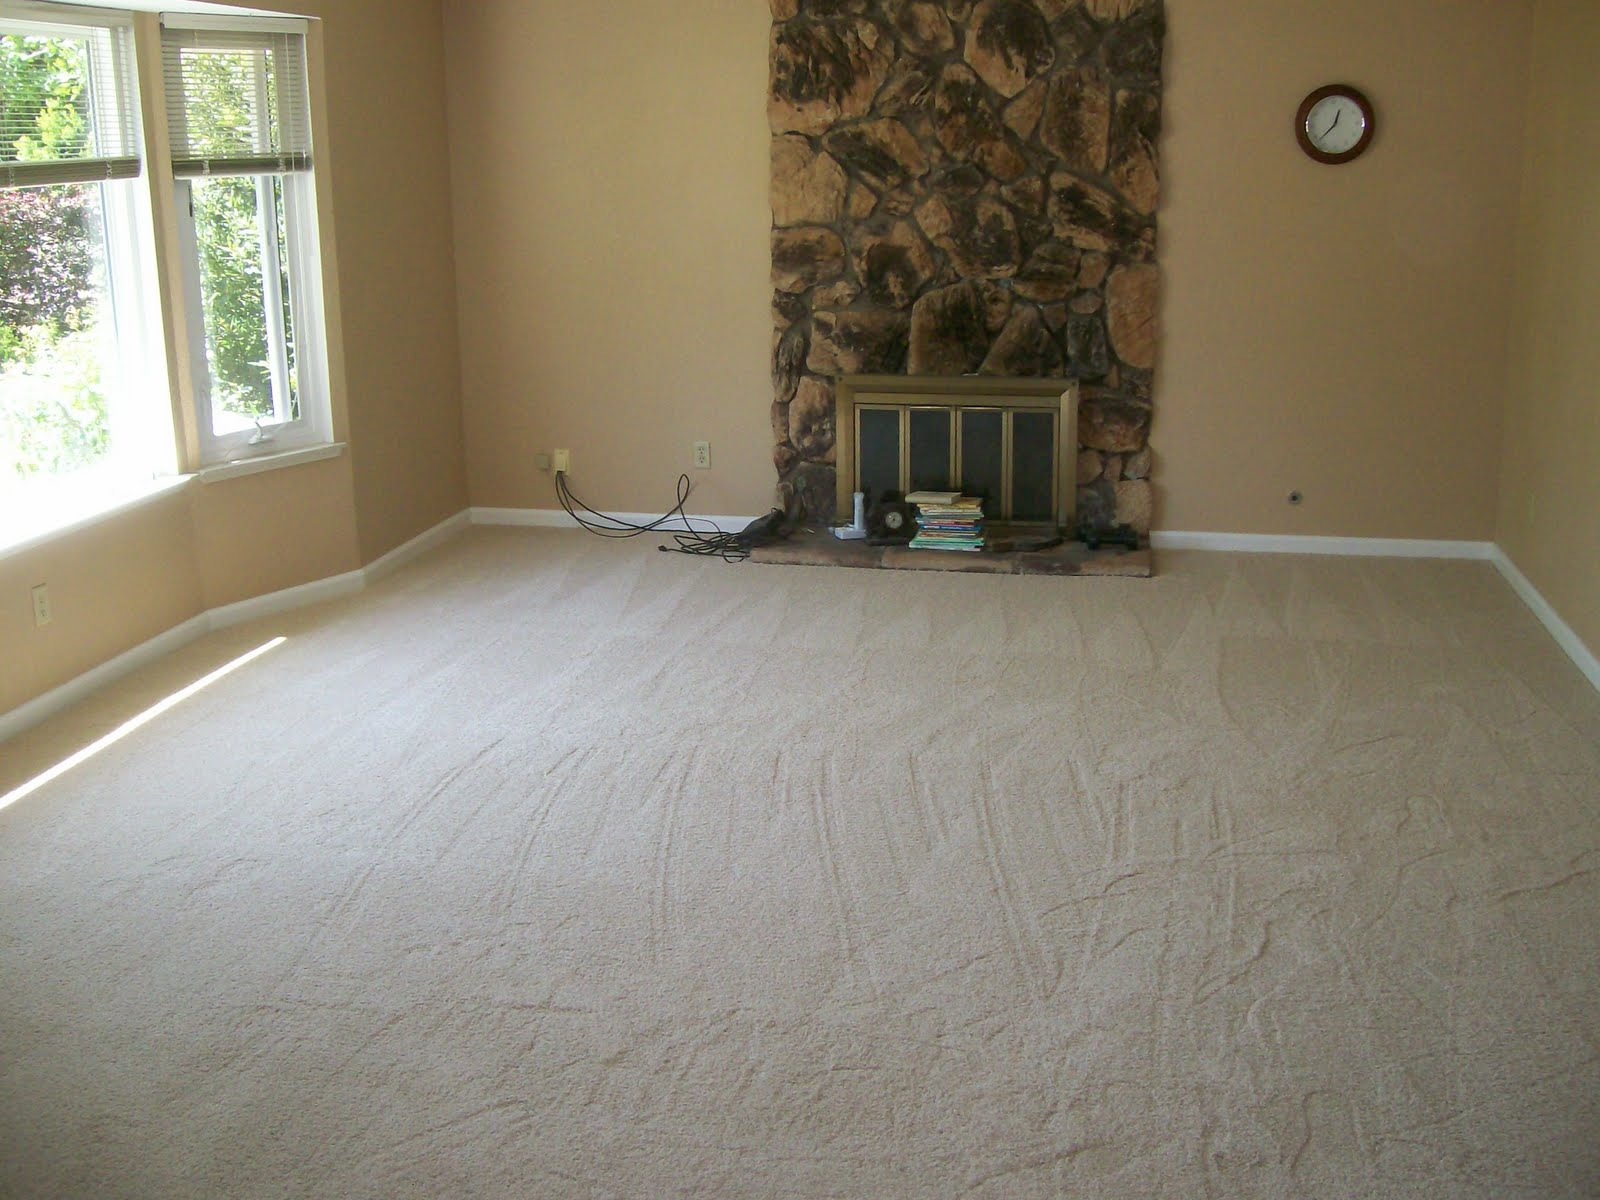 Keeping in touch with george and shelly new carpet new room Carpet for living room